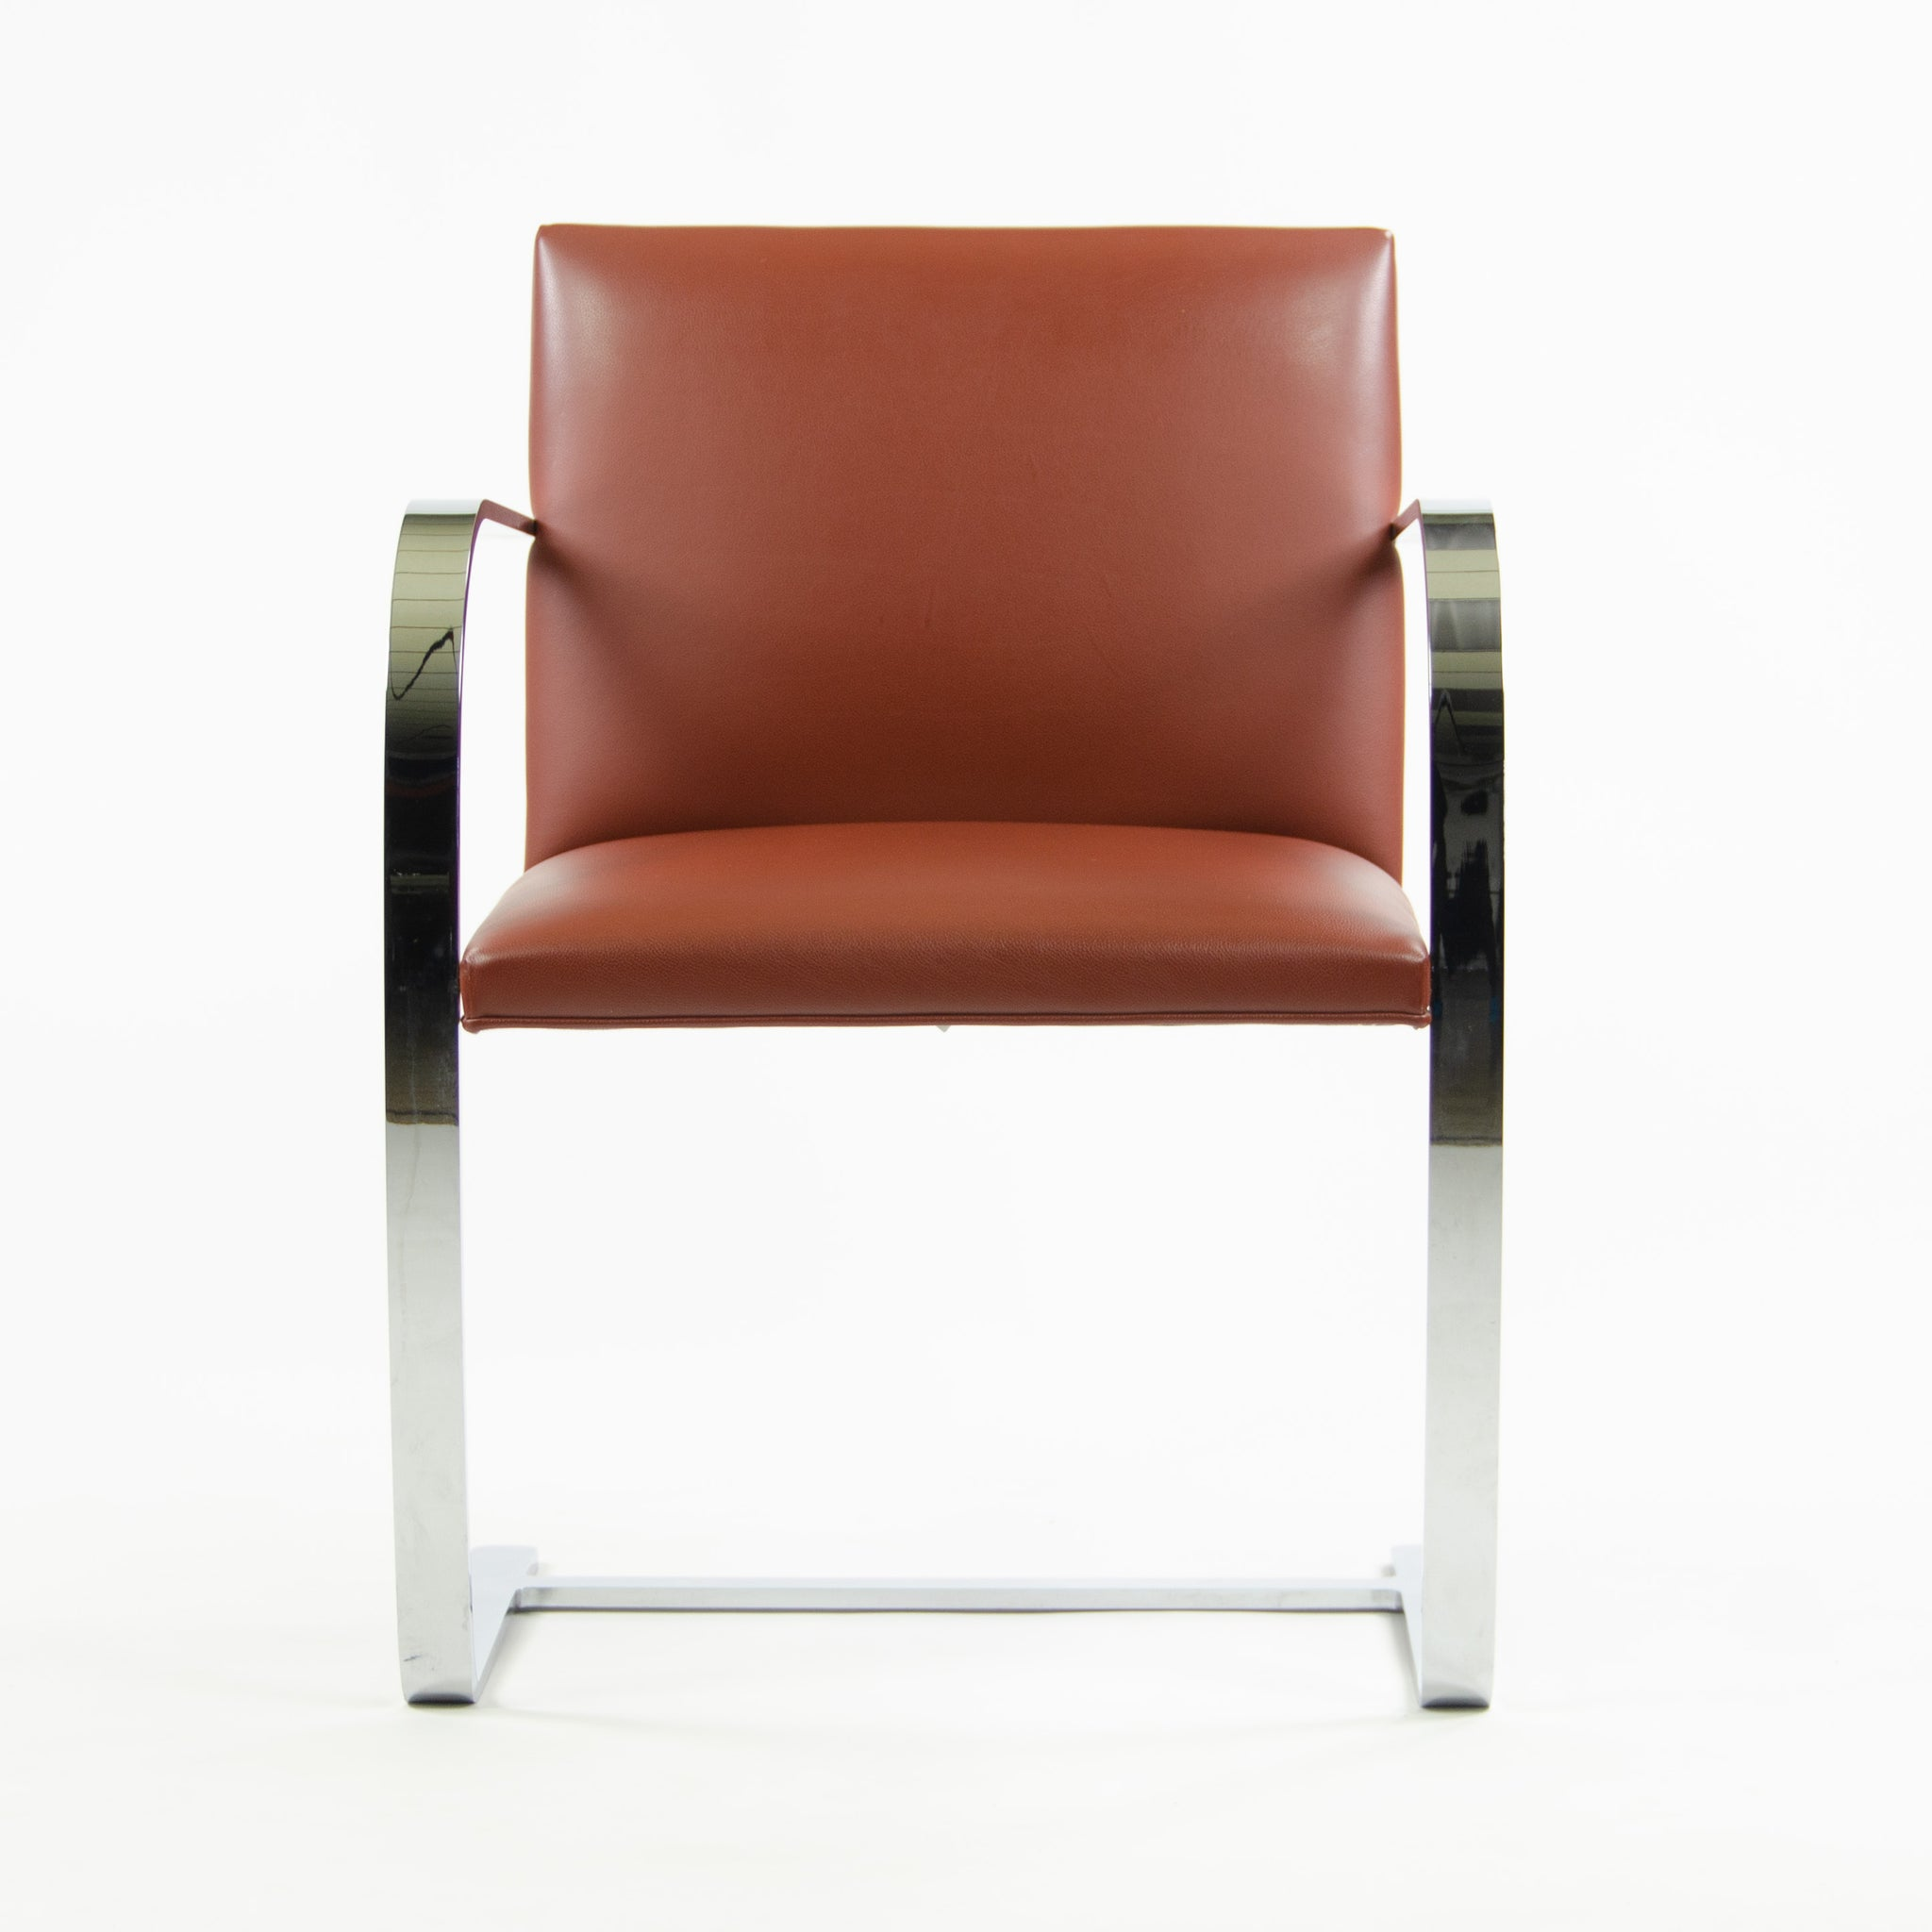 Knoll Mies Van Der Rohe Brno Chairs Redrust Leather 3x Avail 2006